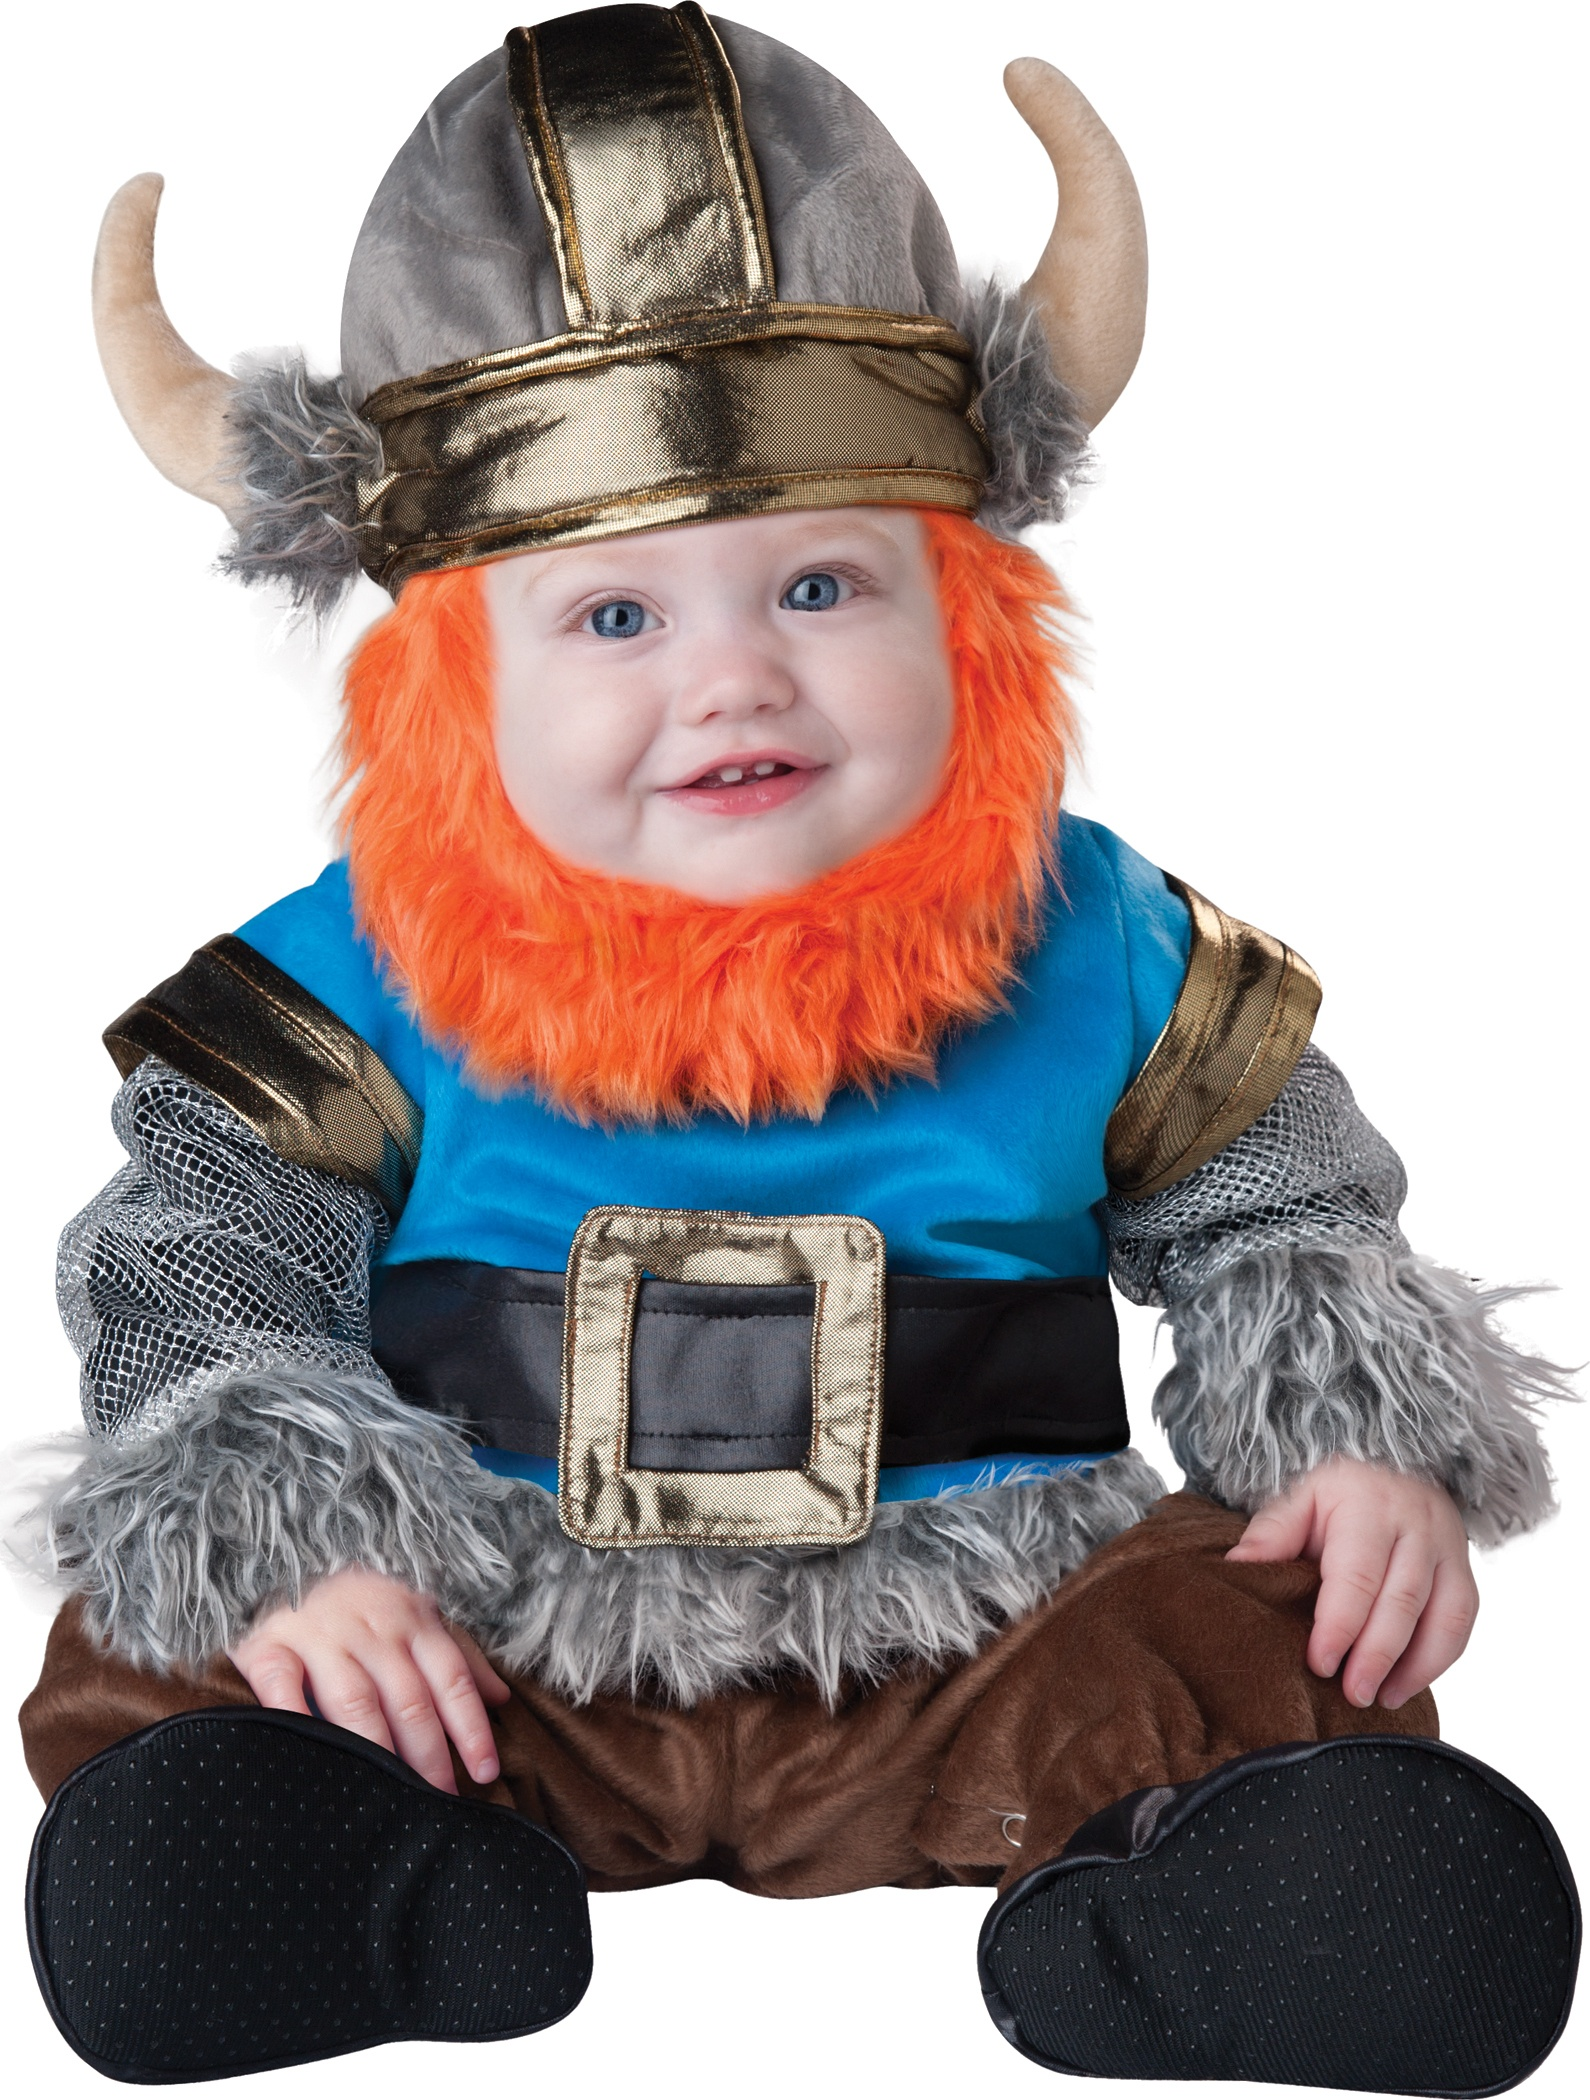 Home gt gt viking costumes gt gt lil viking baby costume